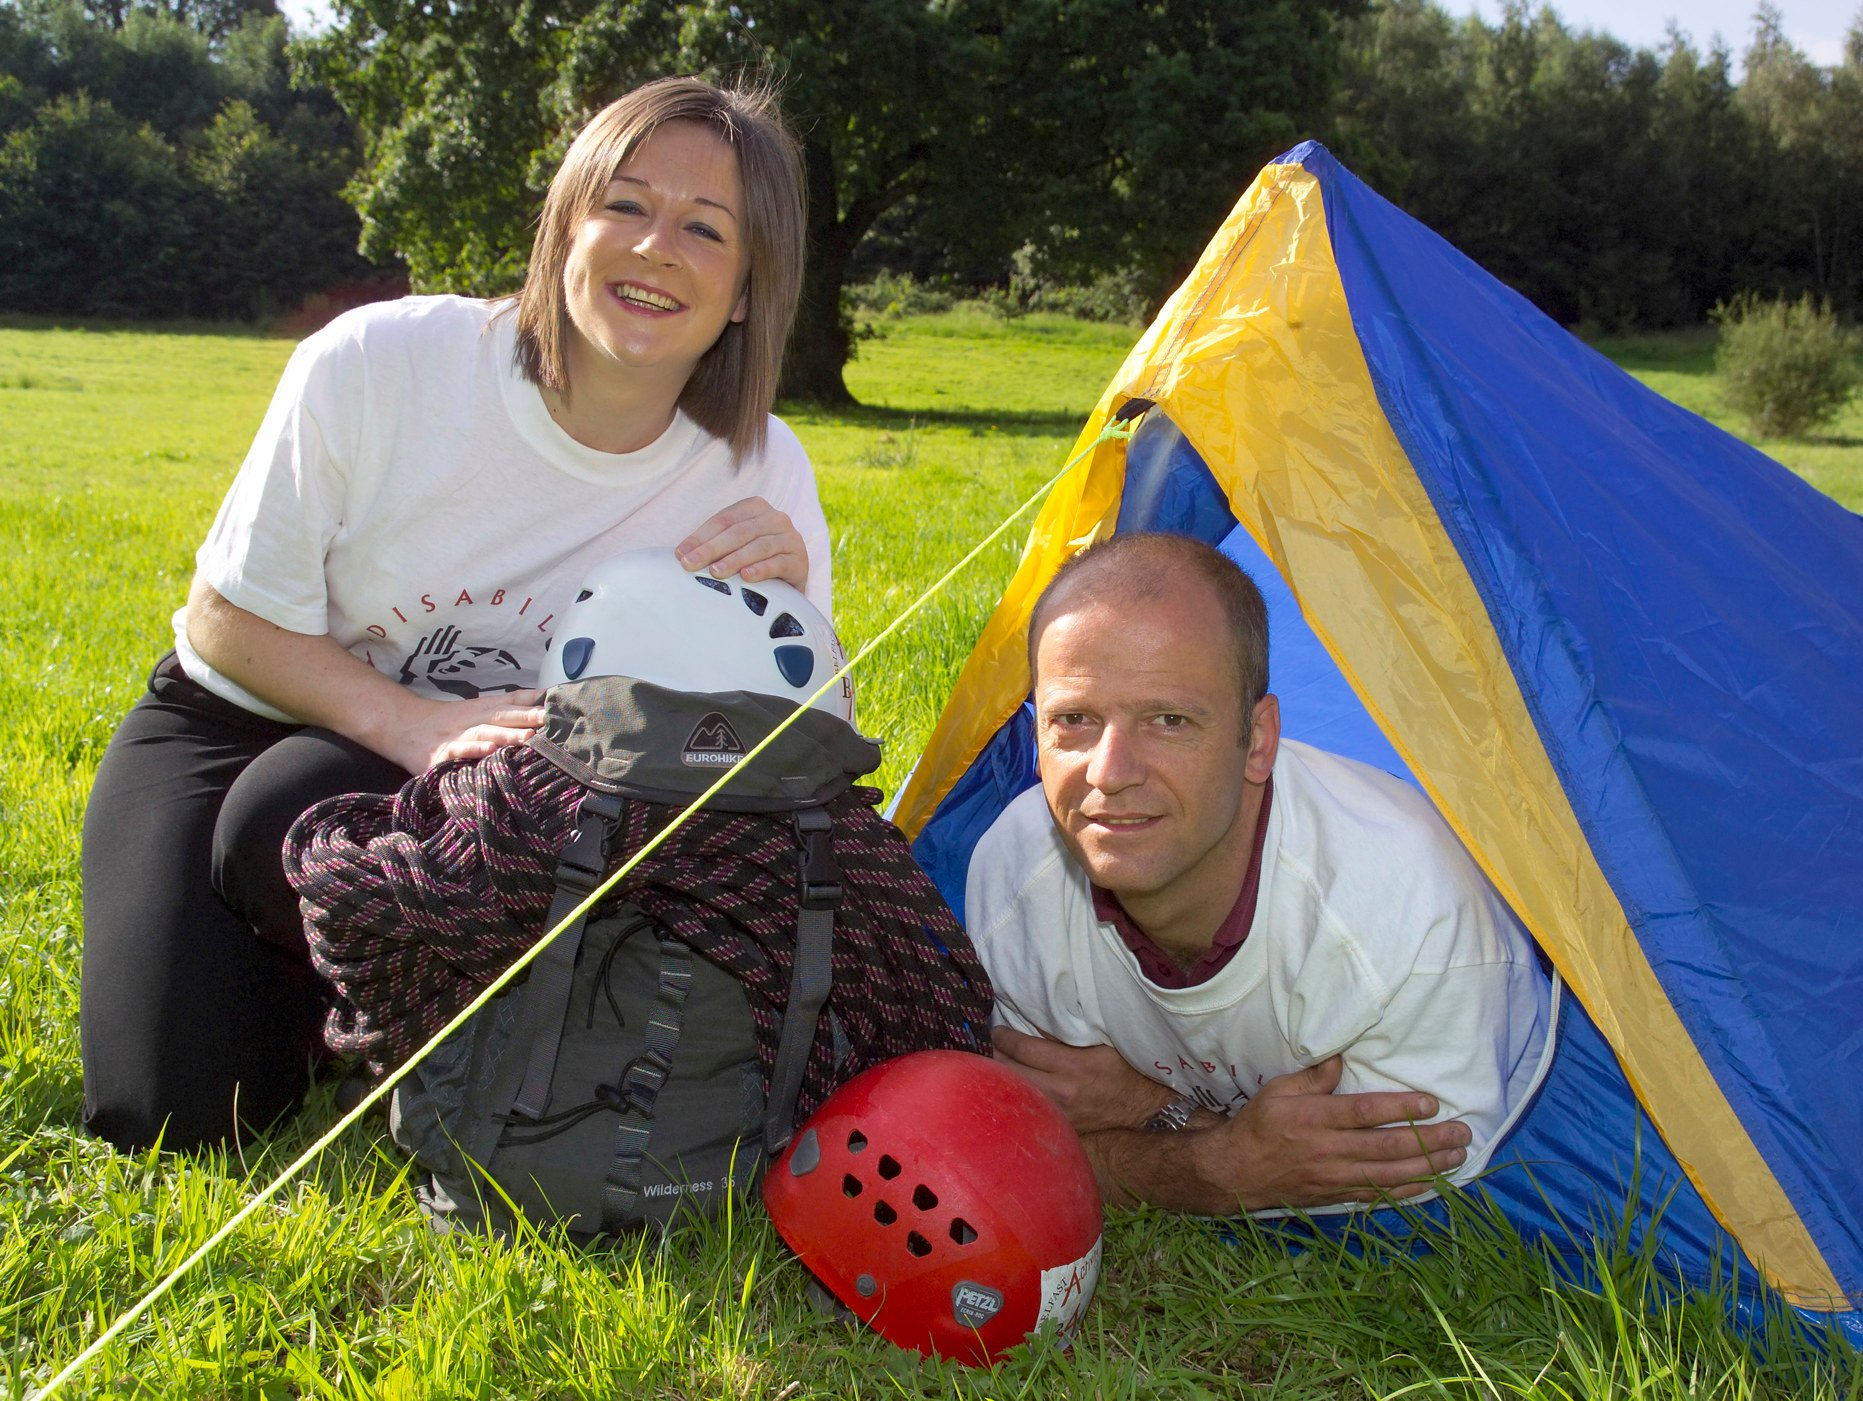 Image of Darren Campbell in a tent and Clare Sheeran from Disability Action in a Disability Action t-shirt